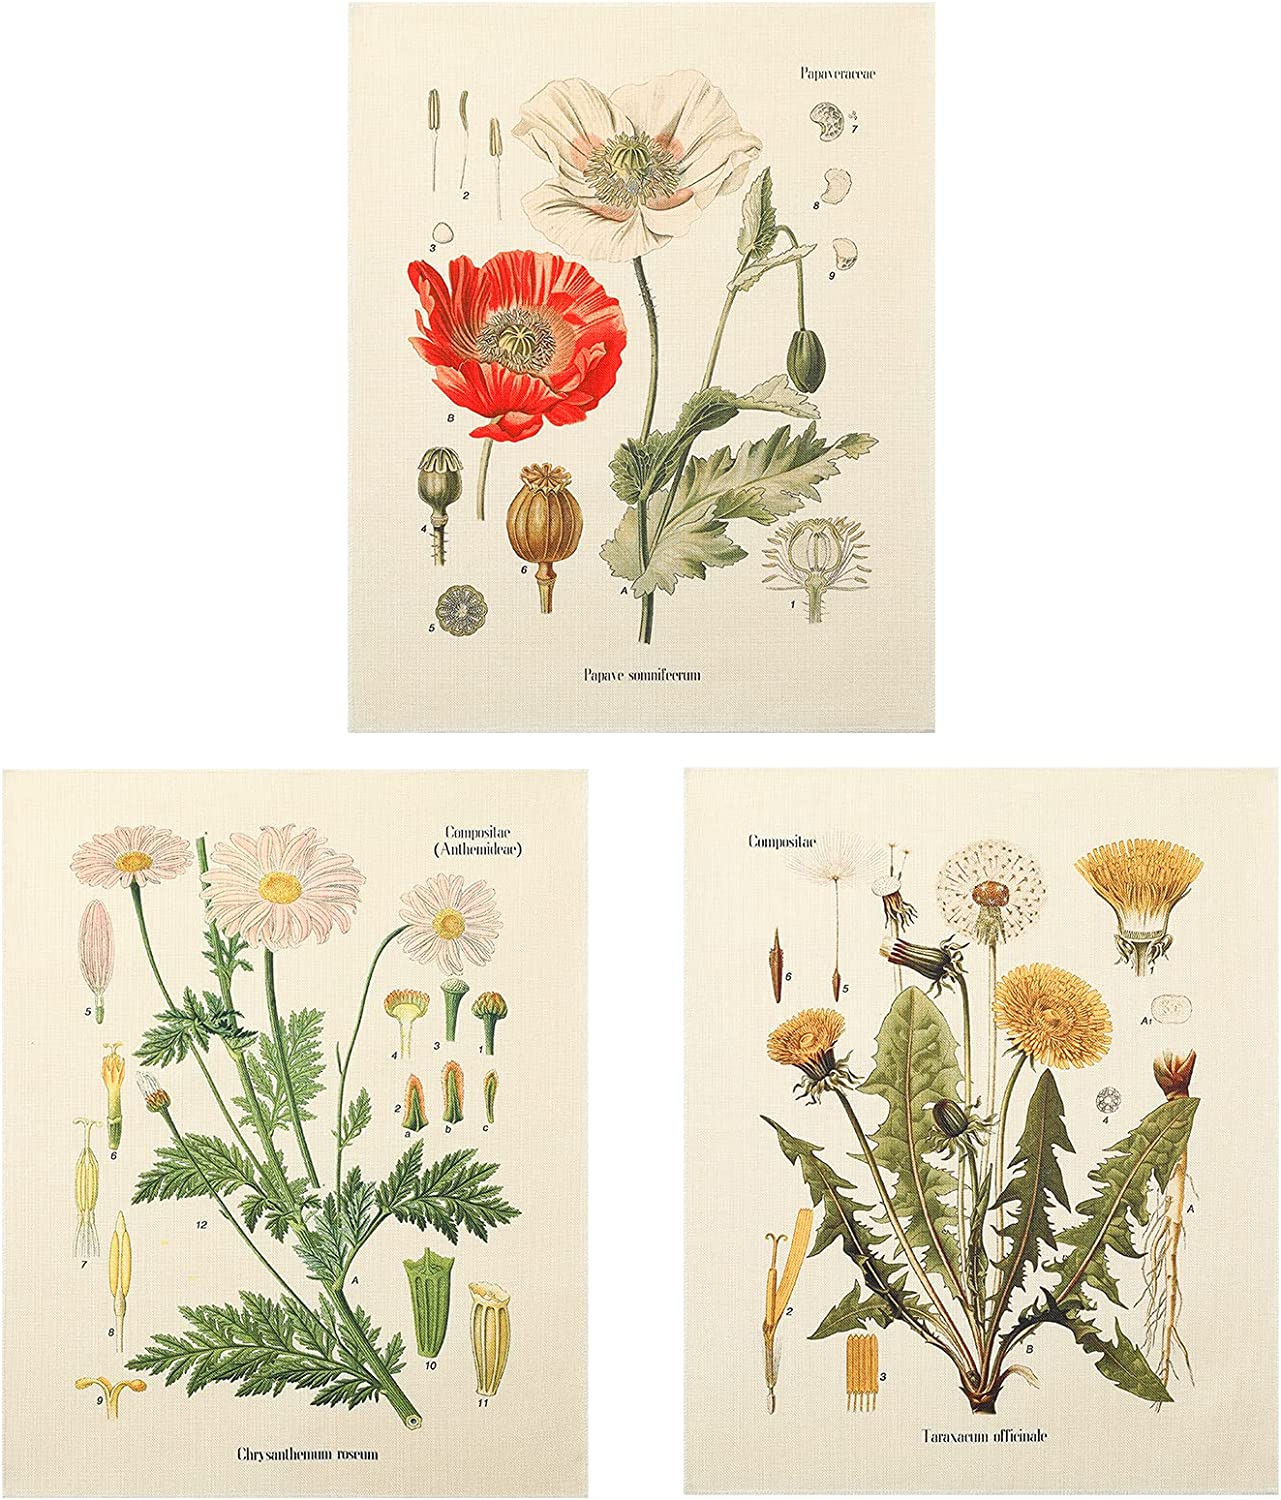 3Pcs Flower Tapestry Wall Hanging Wholesale Finally resale start Flor - Lourny Wildflower Plant